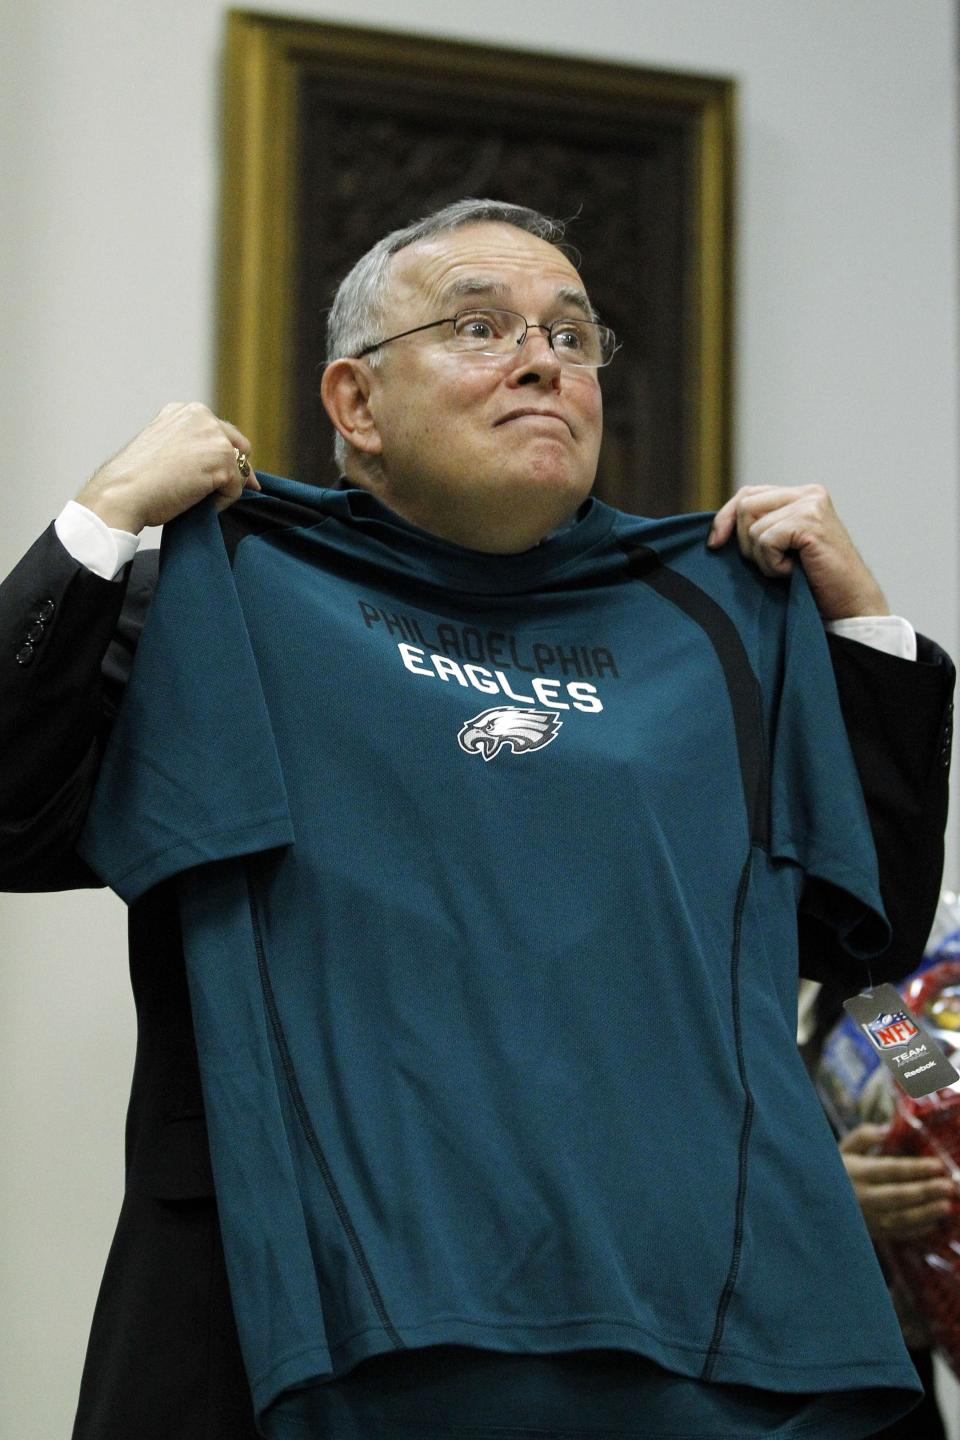 Denver Archbishop Charles Chaput gestures as he displays a Philadelphia Eagles football shirt at a news conference Tuesday, July 19, 2011, in Philadelphia. The Vatican on Tuesday named Chaput Cardinal Justin Rigali's successor as Archbishop of Philadelphia. (AP Photo/Matt Rourke)